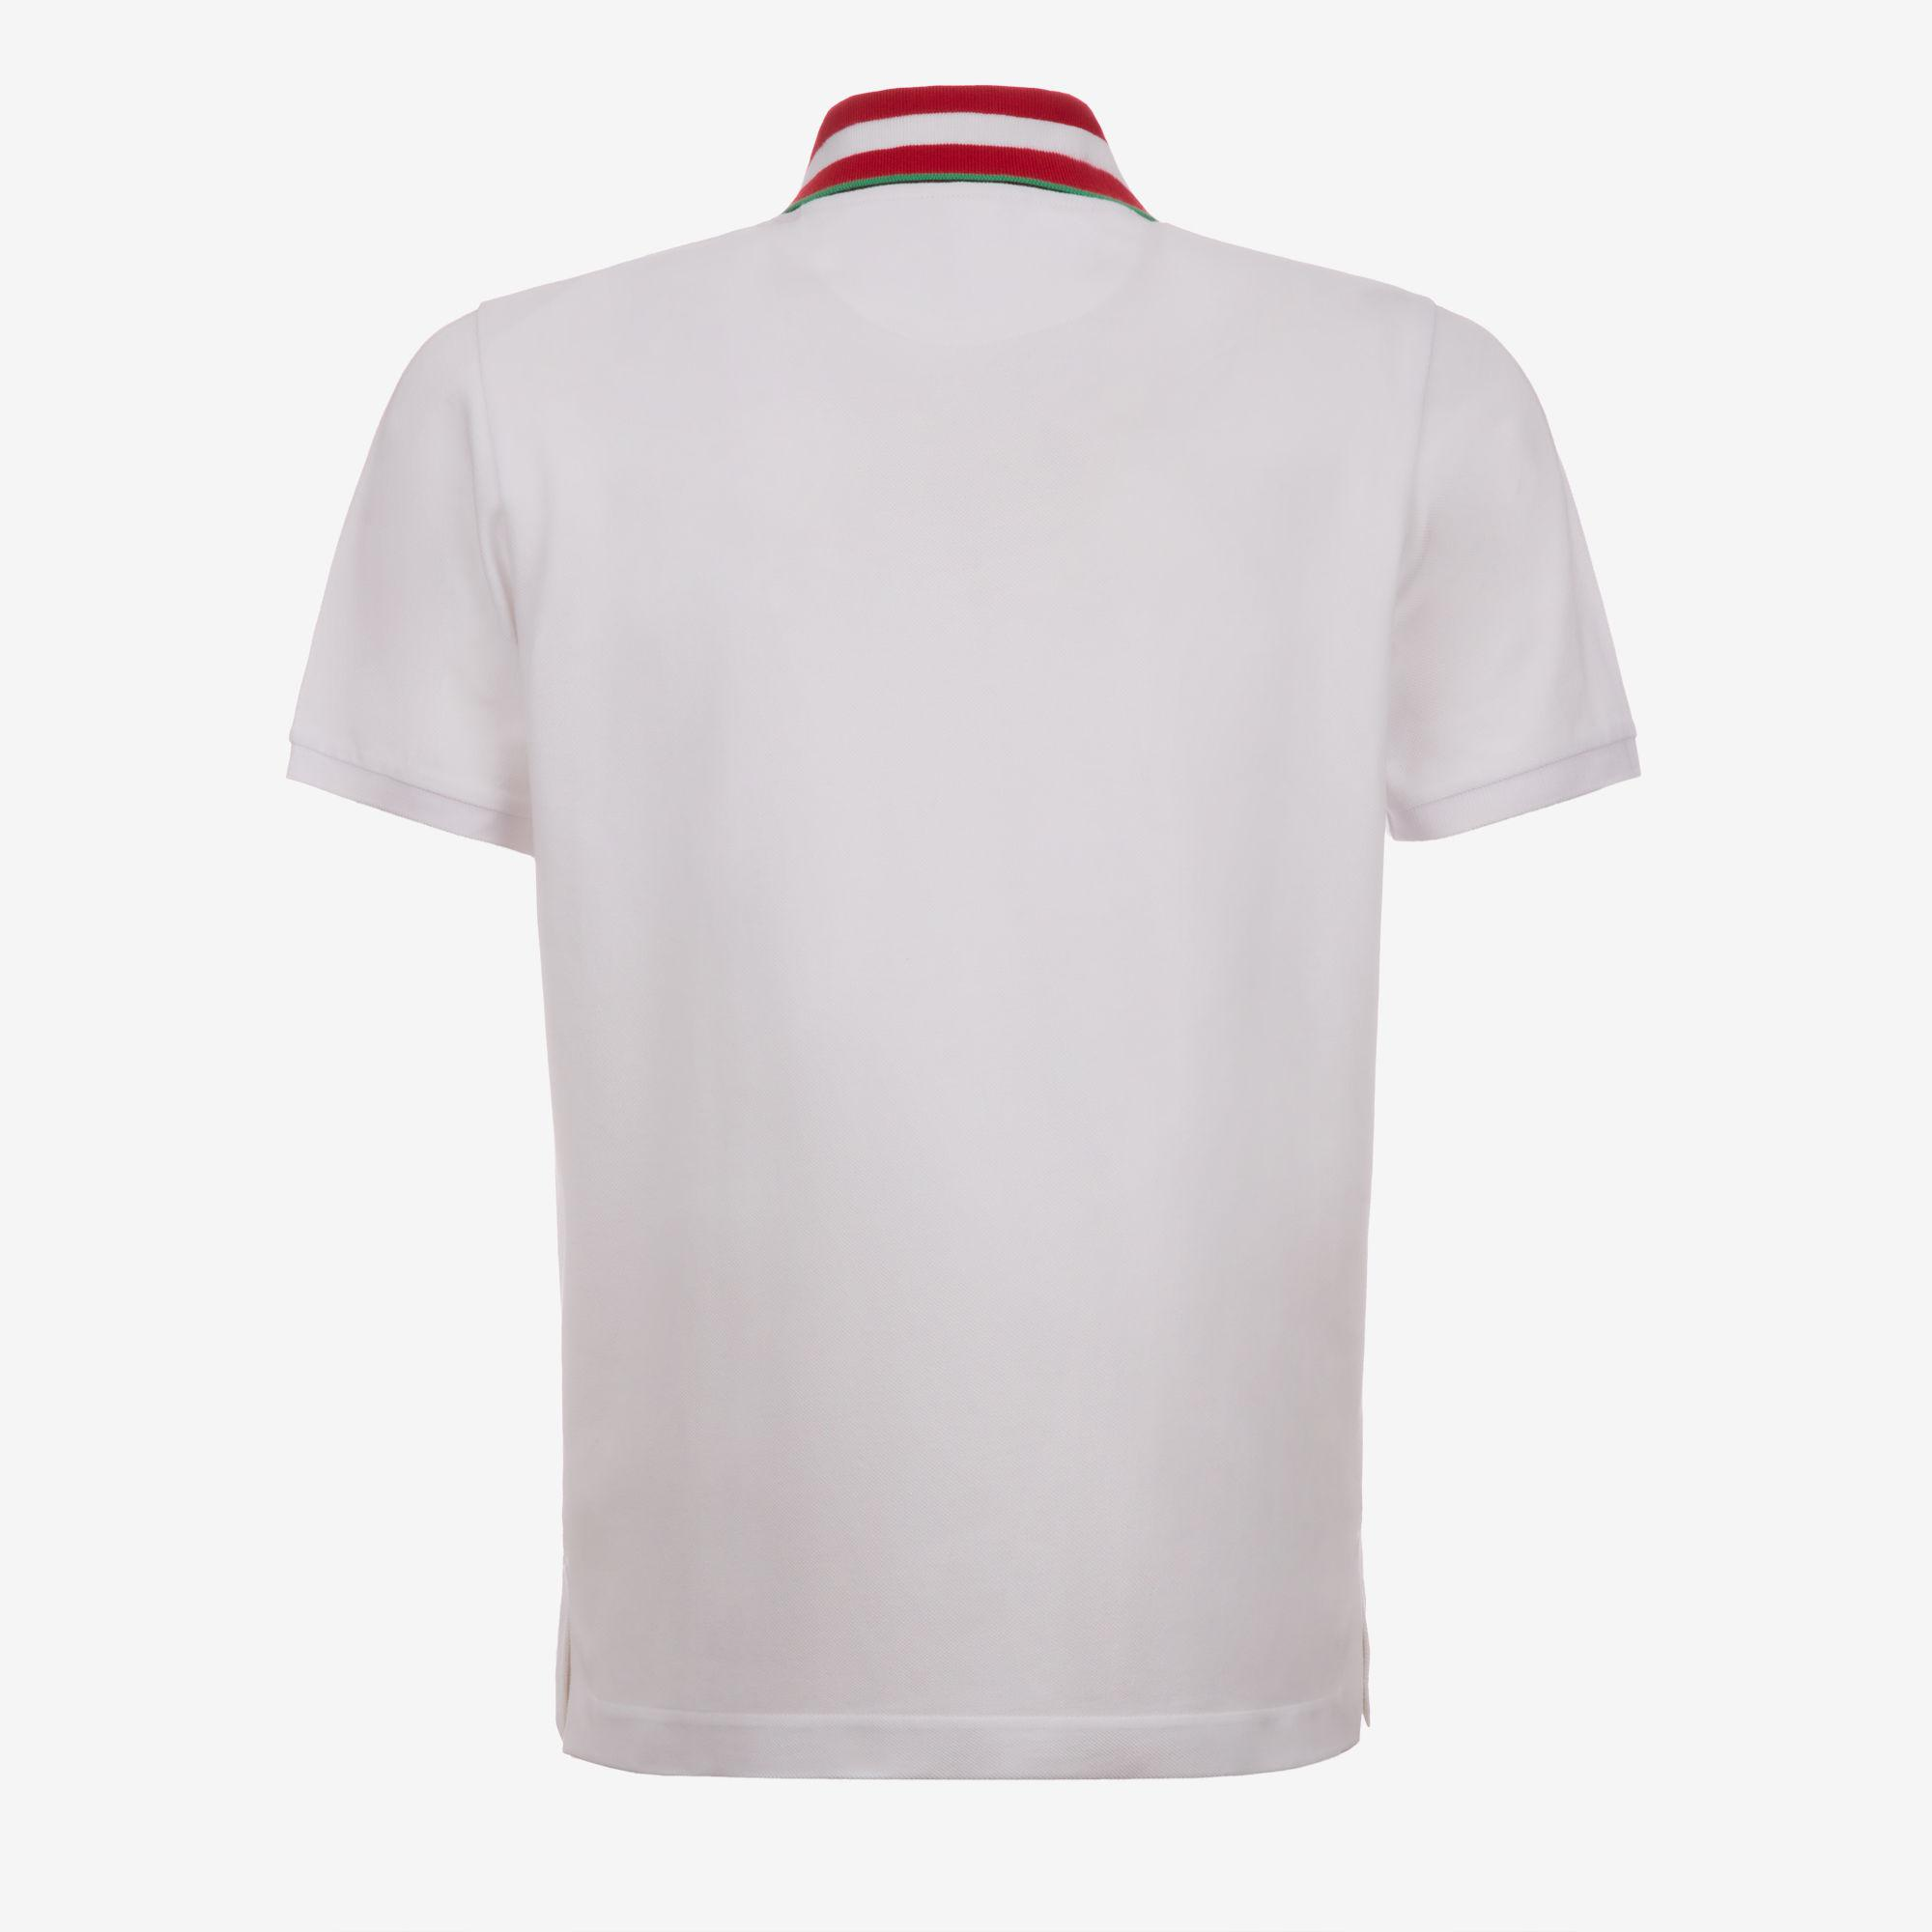 aa73107a Lyst - Bally Embroidered Stripe Collar Polo Shirt in White for Men